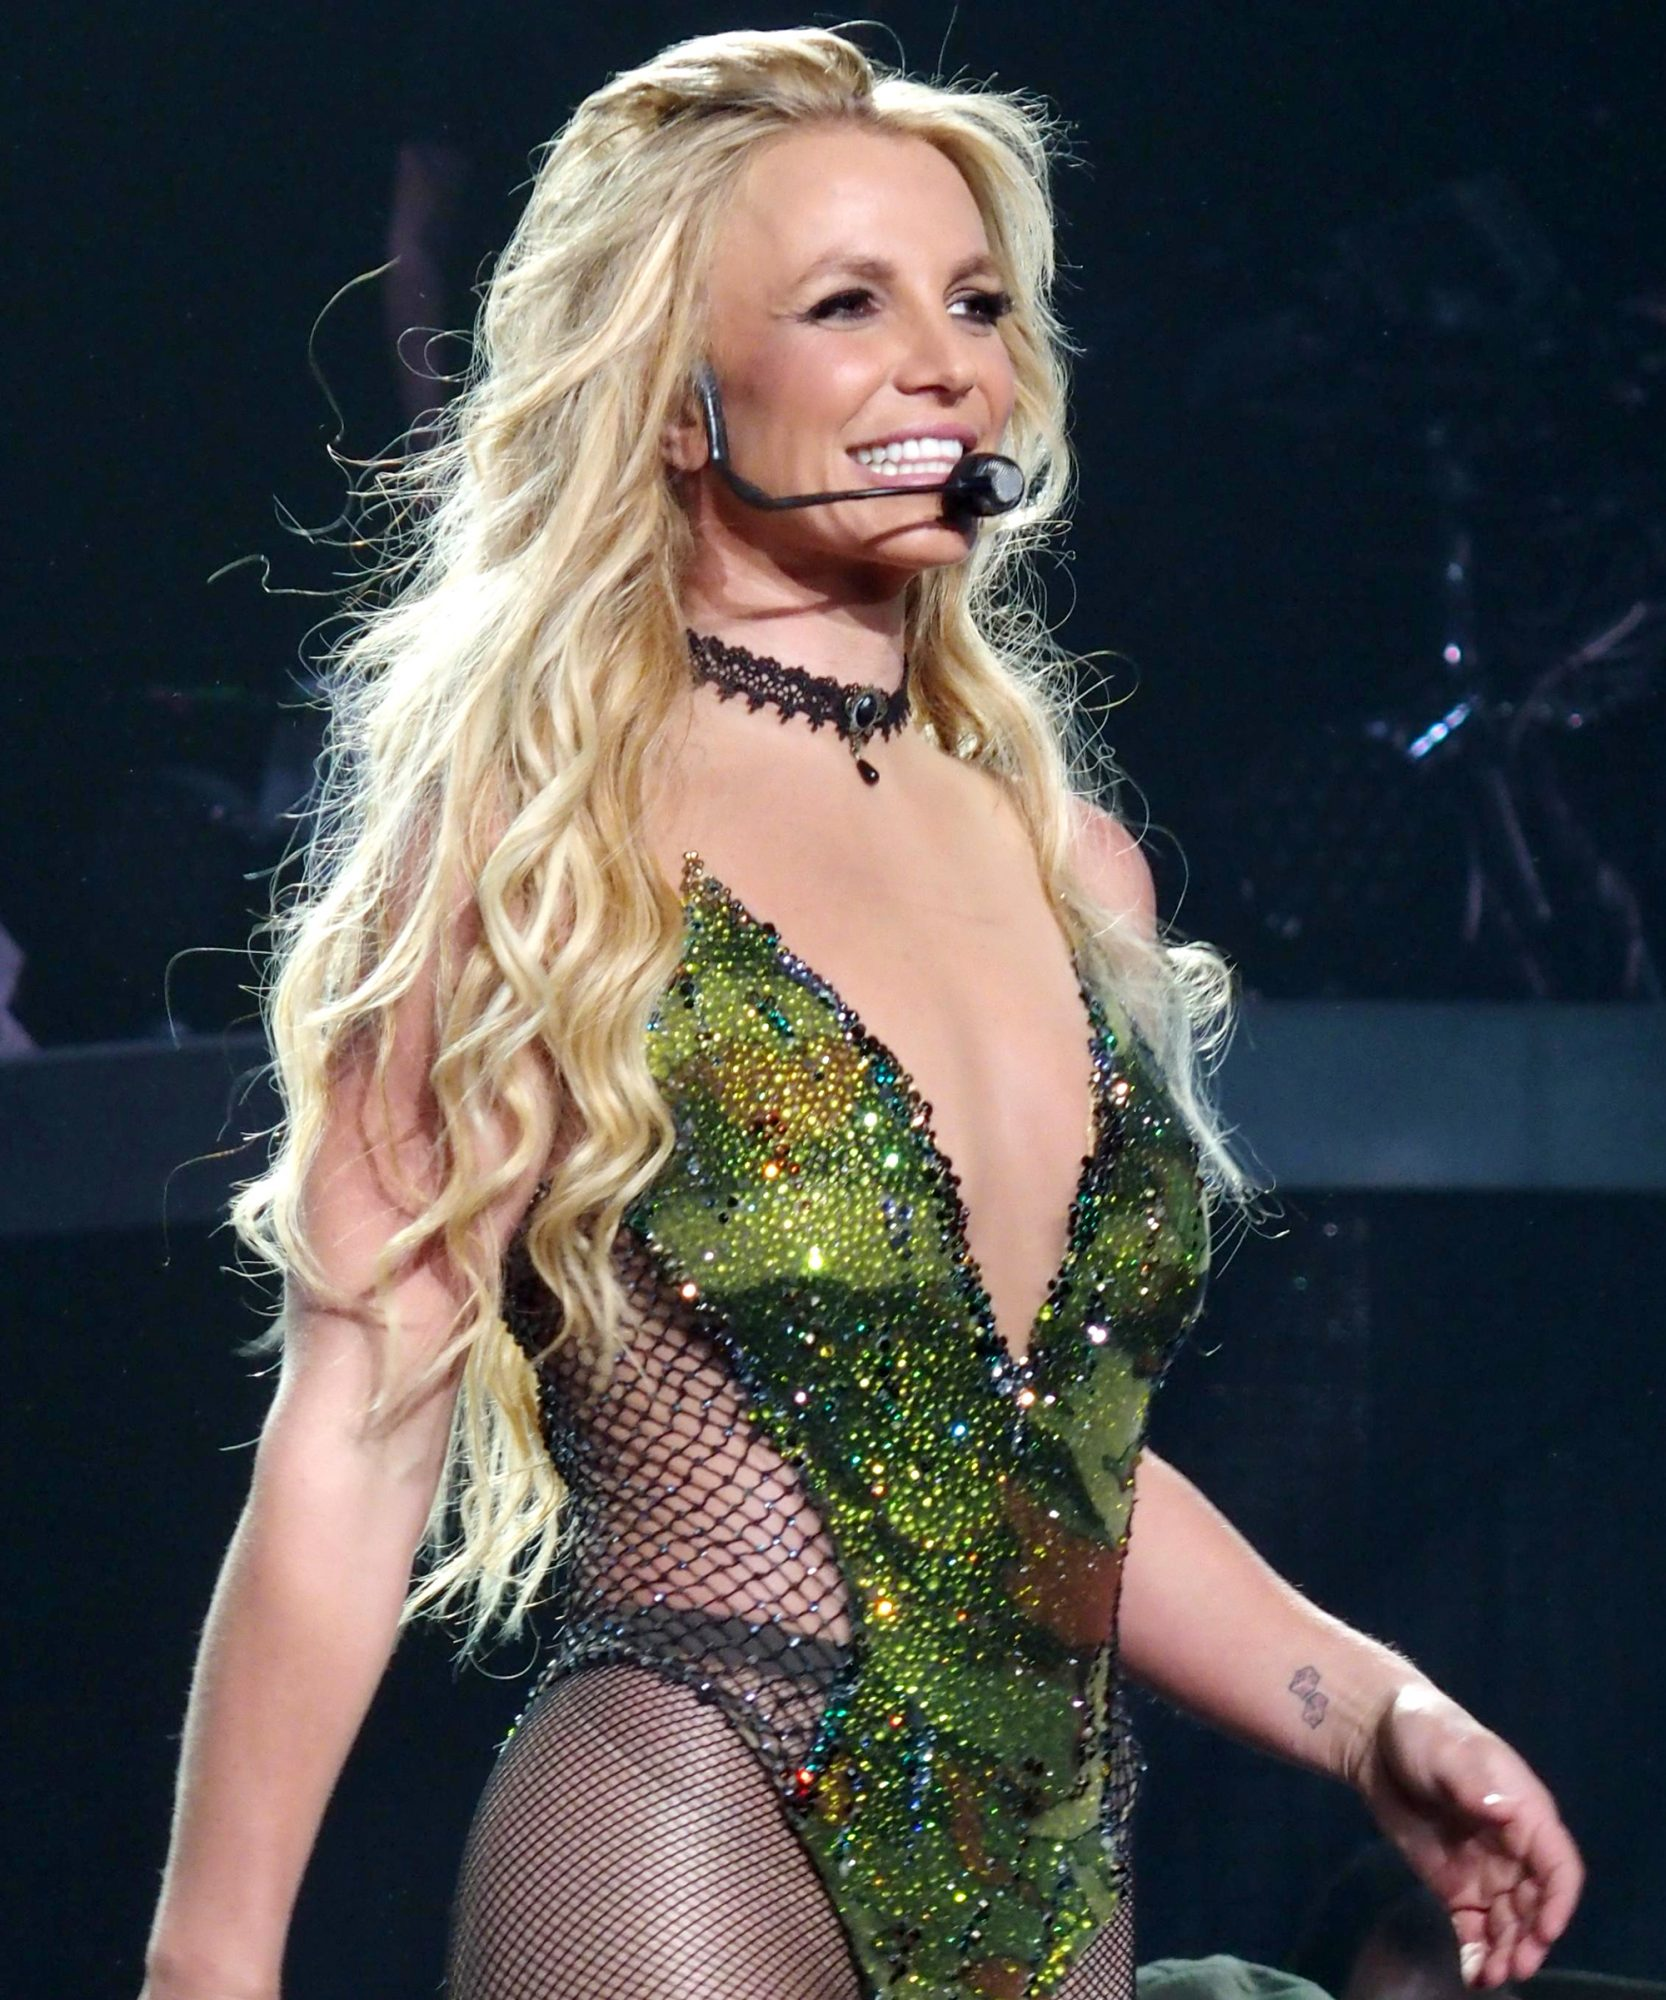 Britney Spears Just Announced Her Brand New Album <em>Glory</em>—See the Cover